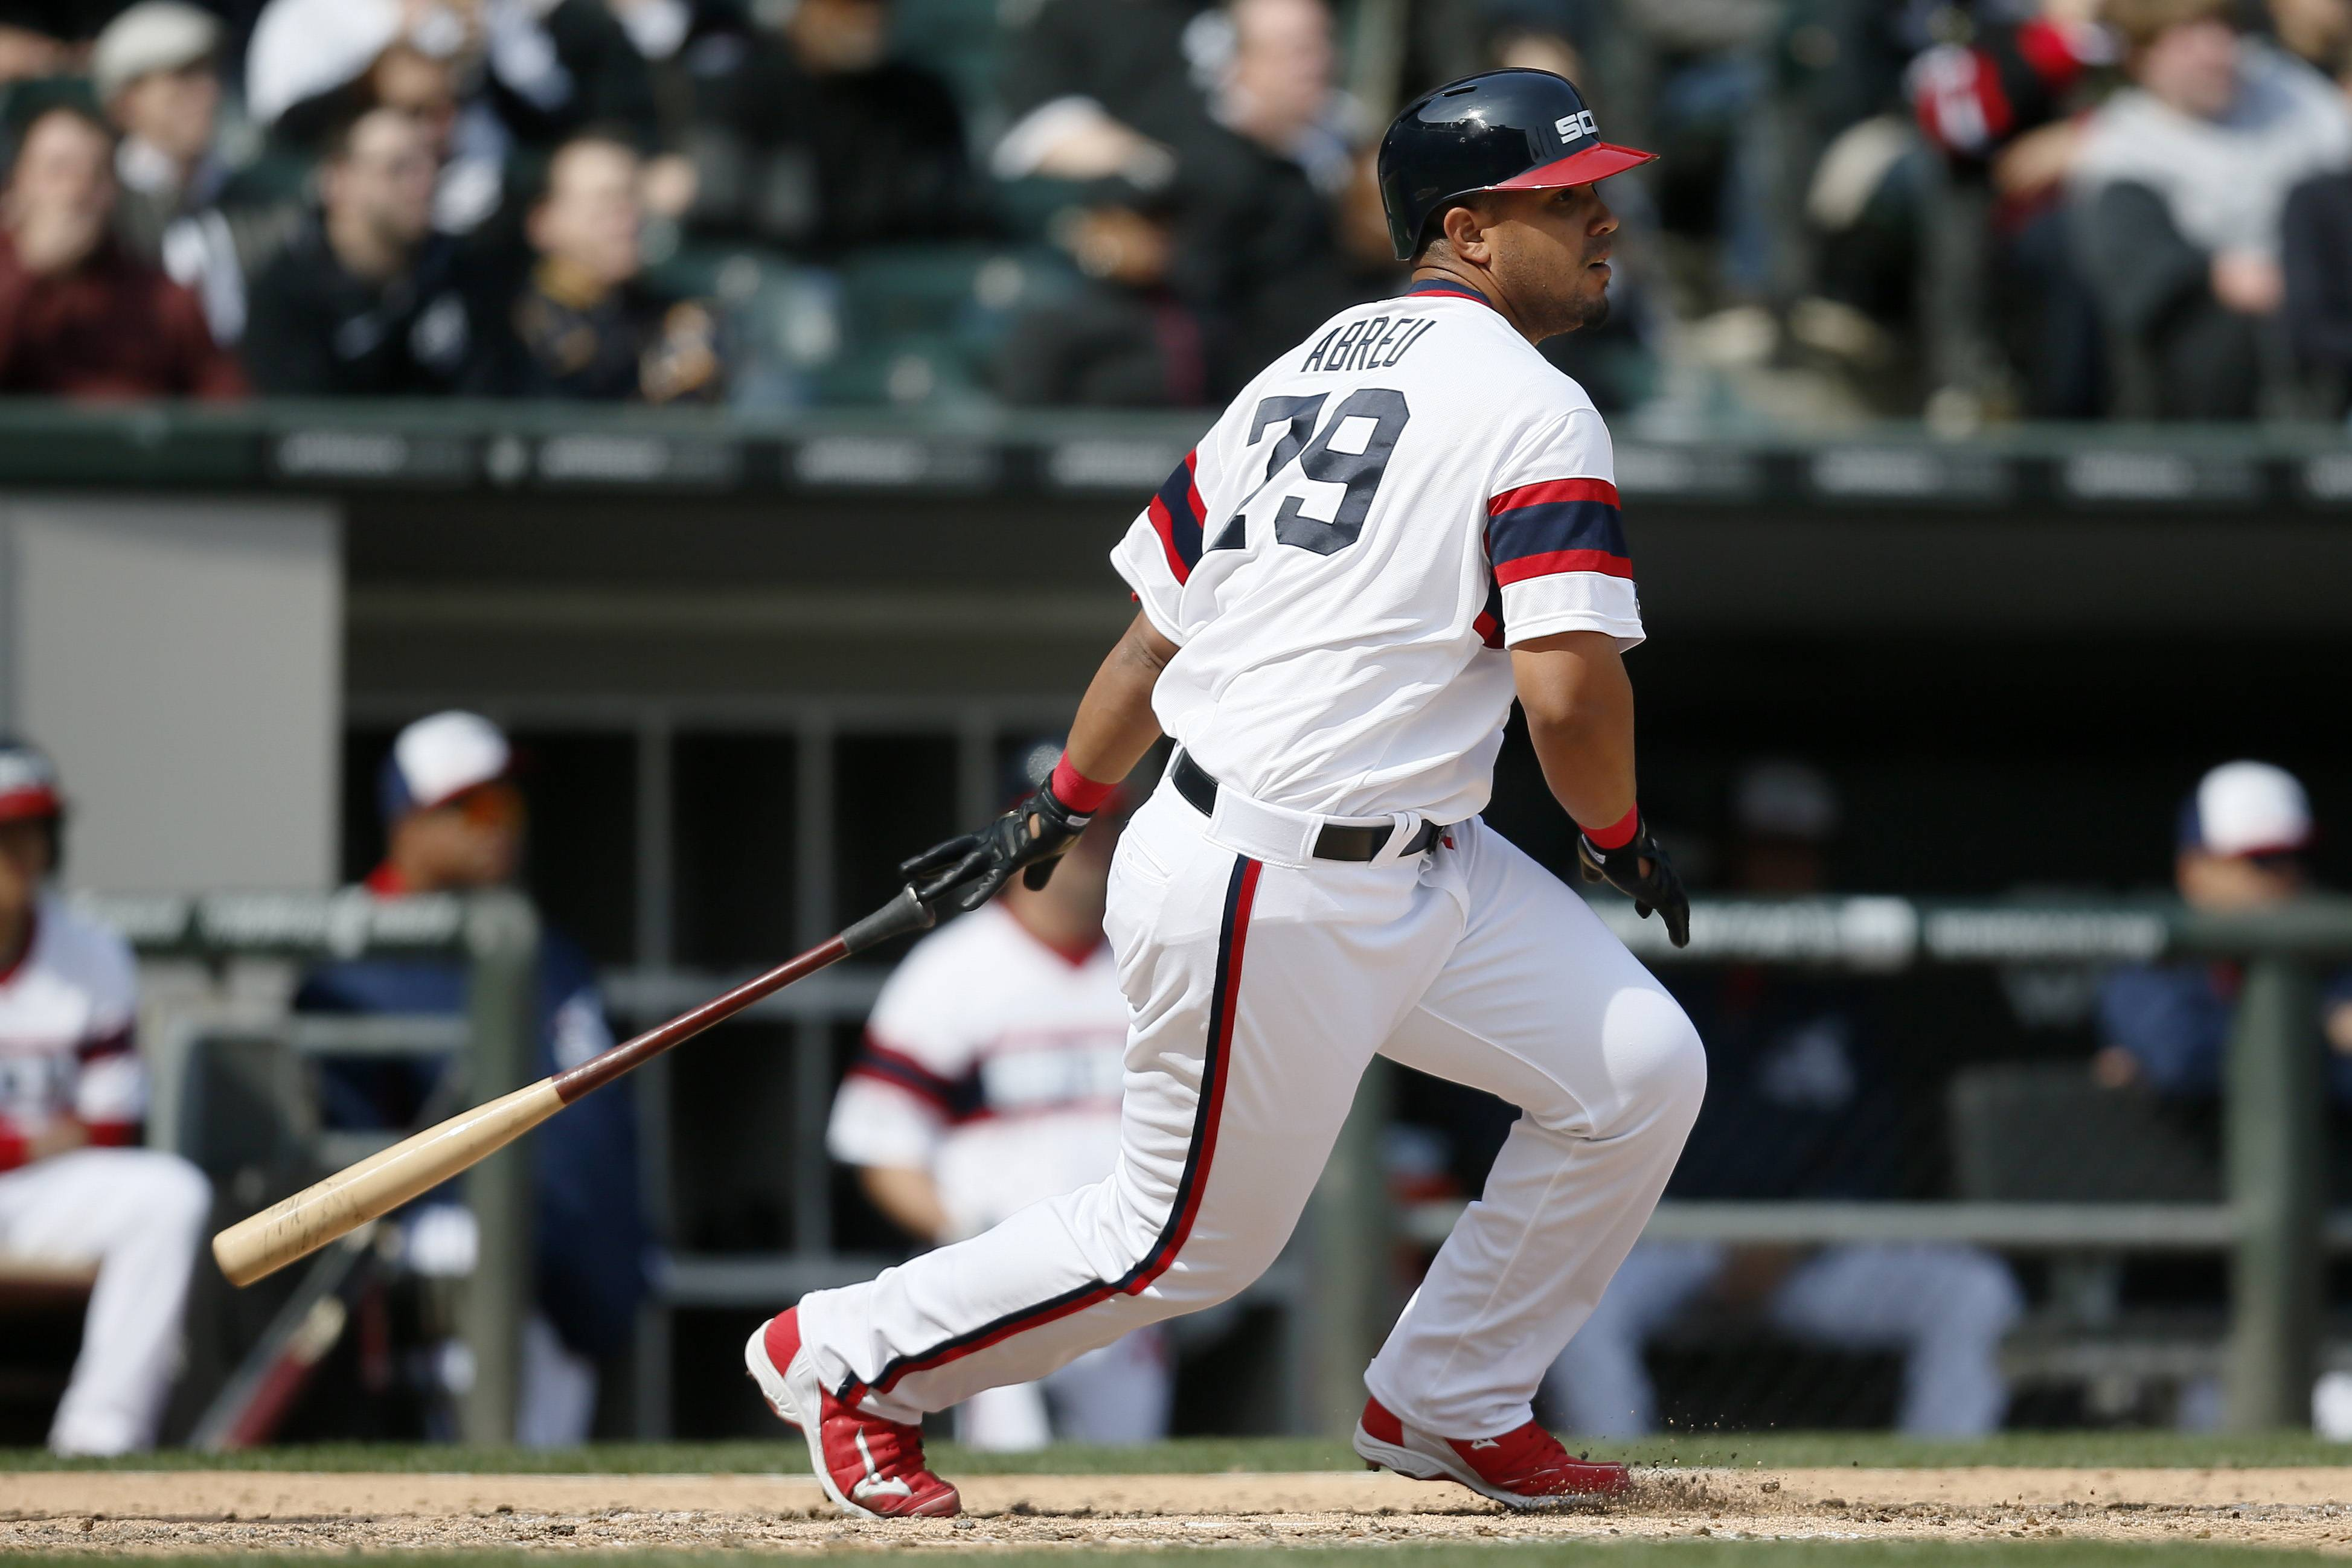 Associated PressChicago White Sox first baseman Jose Abreu set two records in April with the most home runs and RBIs by a rookie.